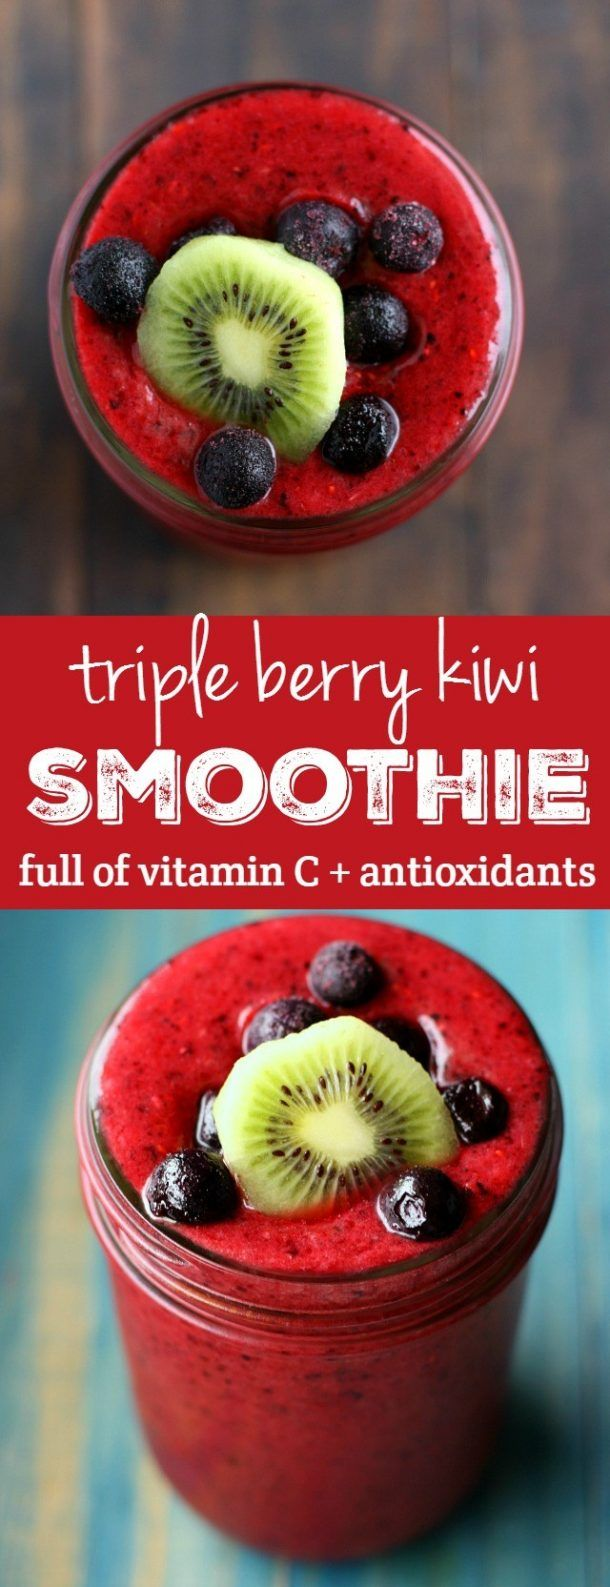 Immunity Boosting Triple Berry Kiwi Smoothie Recipe via The Pretty Bee - Full of Vitamin C and Antioxidants - Healthy Snacks and Treats Recipes #healthysnacks #healthytreats #healthyafterschooltreats #healthyrecipes #healthyfood #healthy #healthydesserts